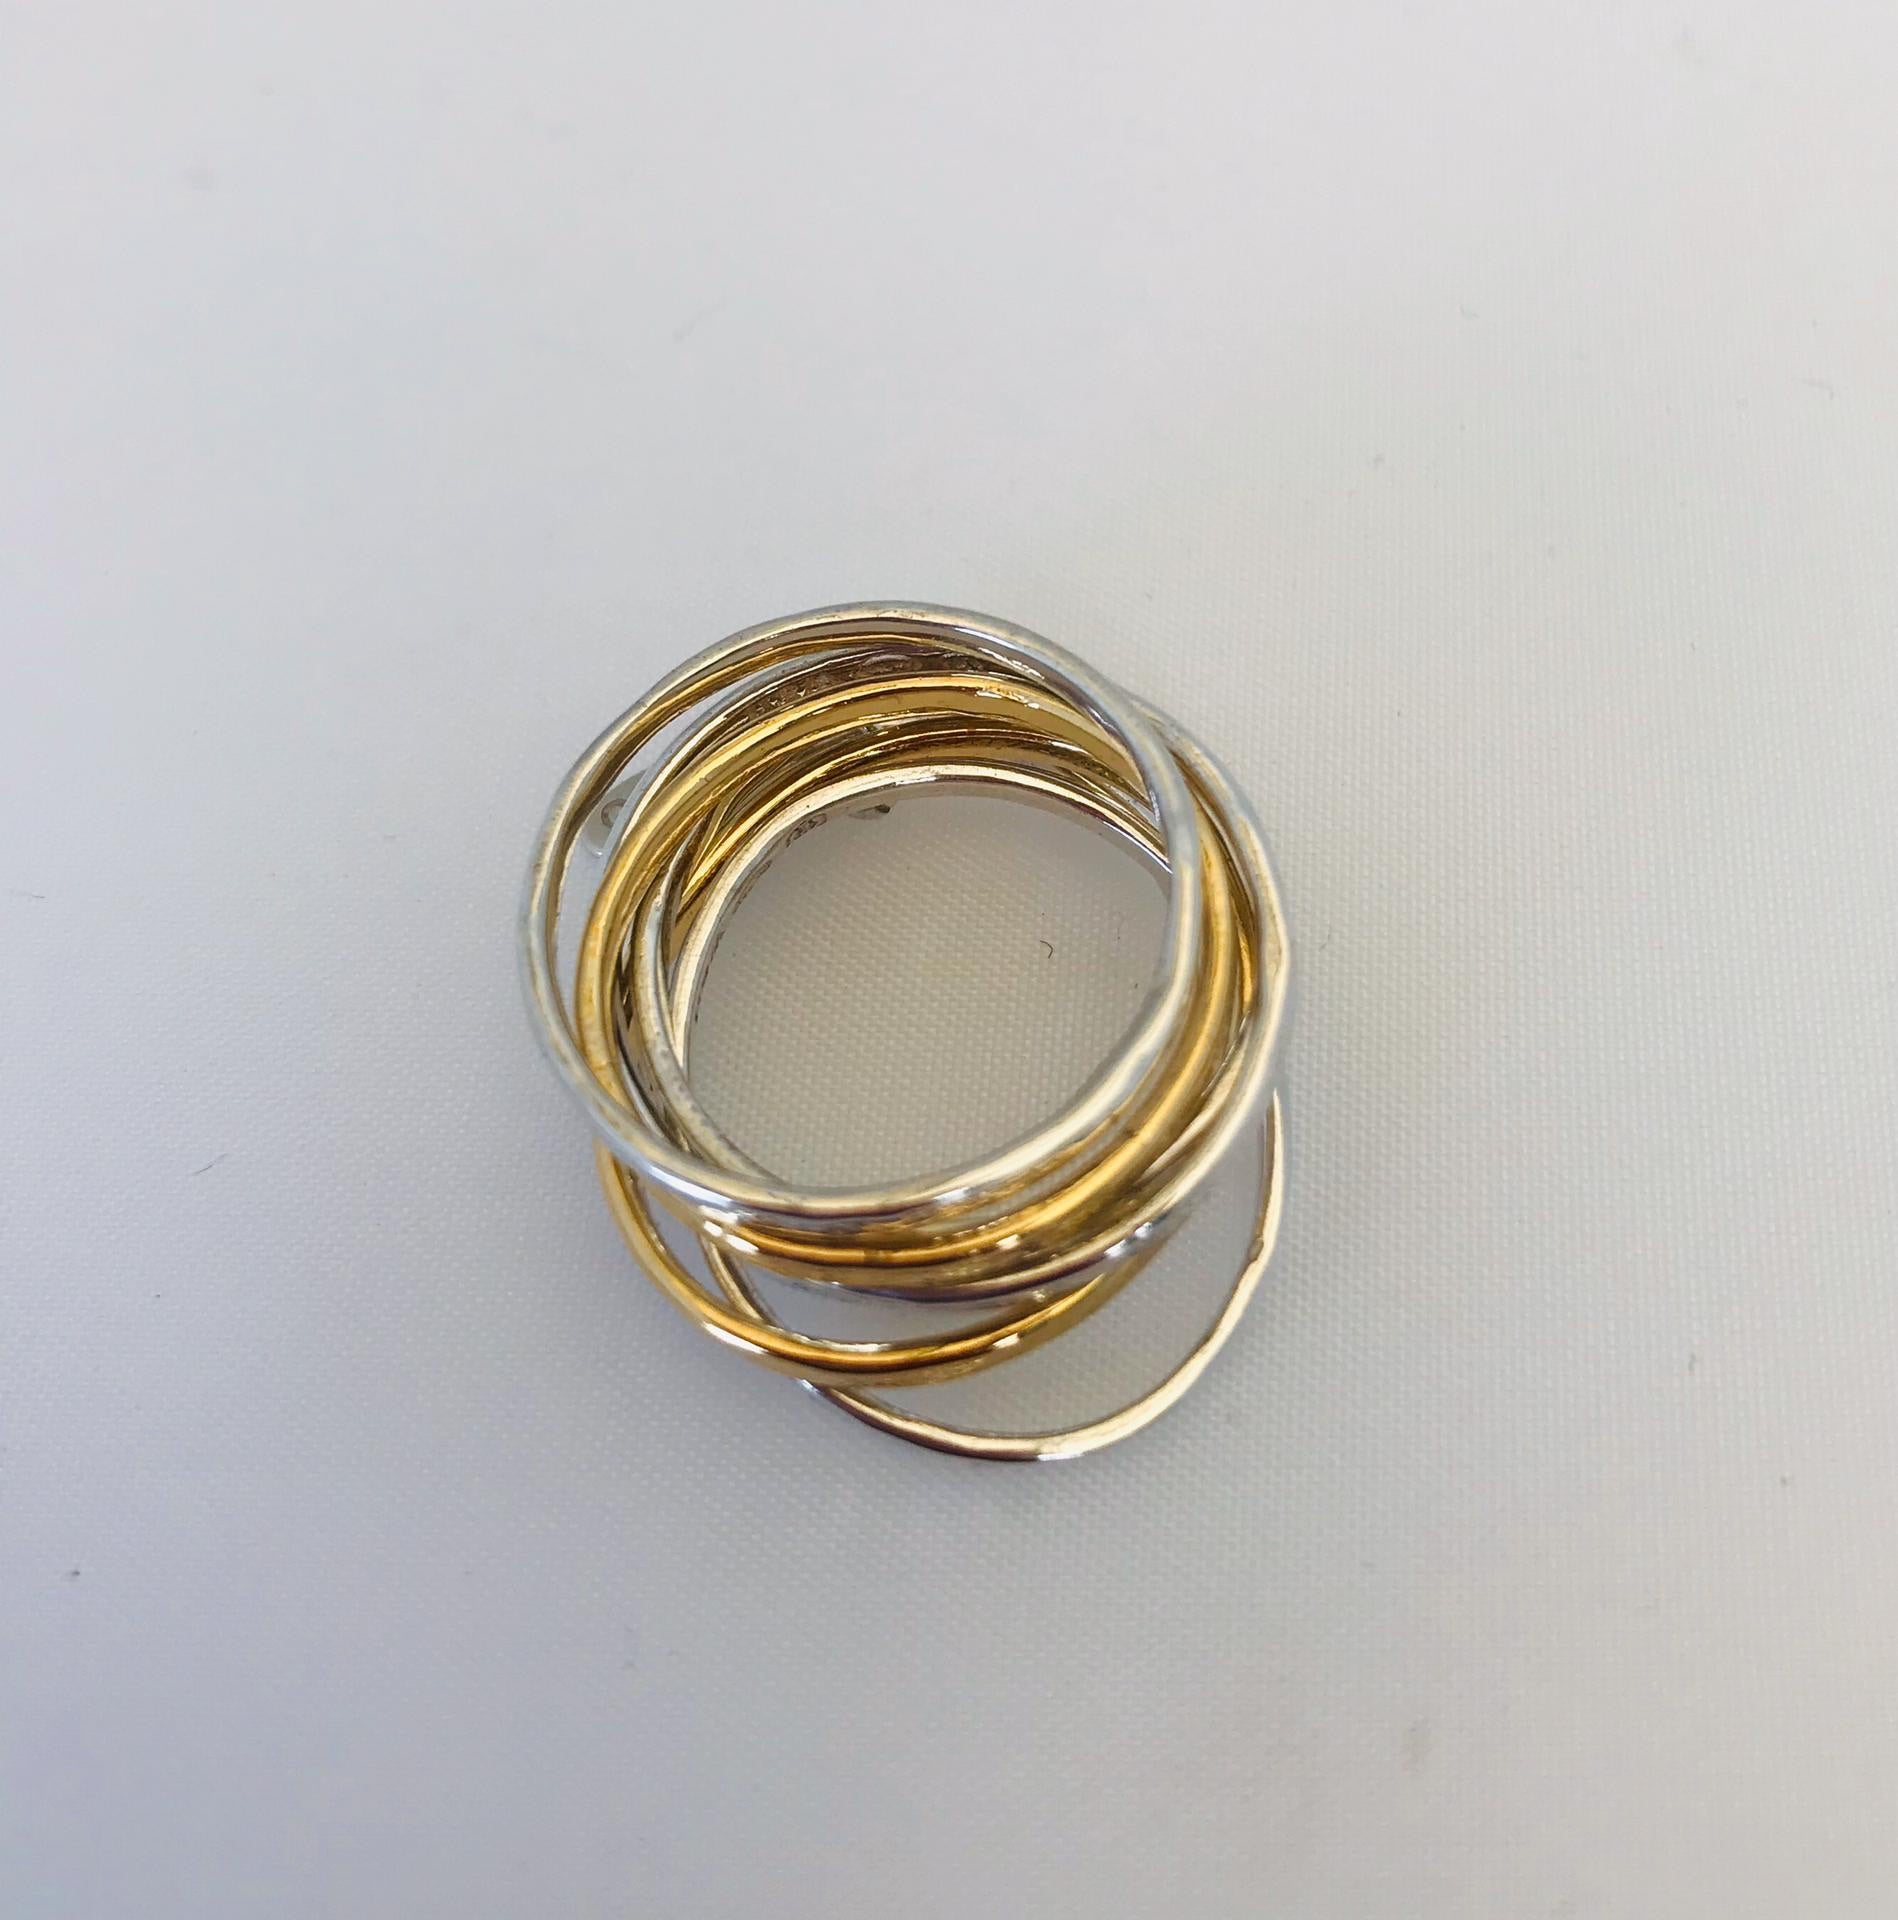 this 7 mix ring by Wouters & Hendrix. The ring include 7 separate rings of which 5 are silver and 2 gold plated. 2 of the silver rings and 1 gold plated ring have an oval shape.